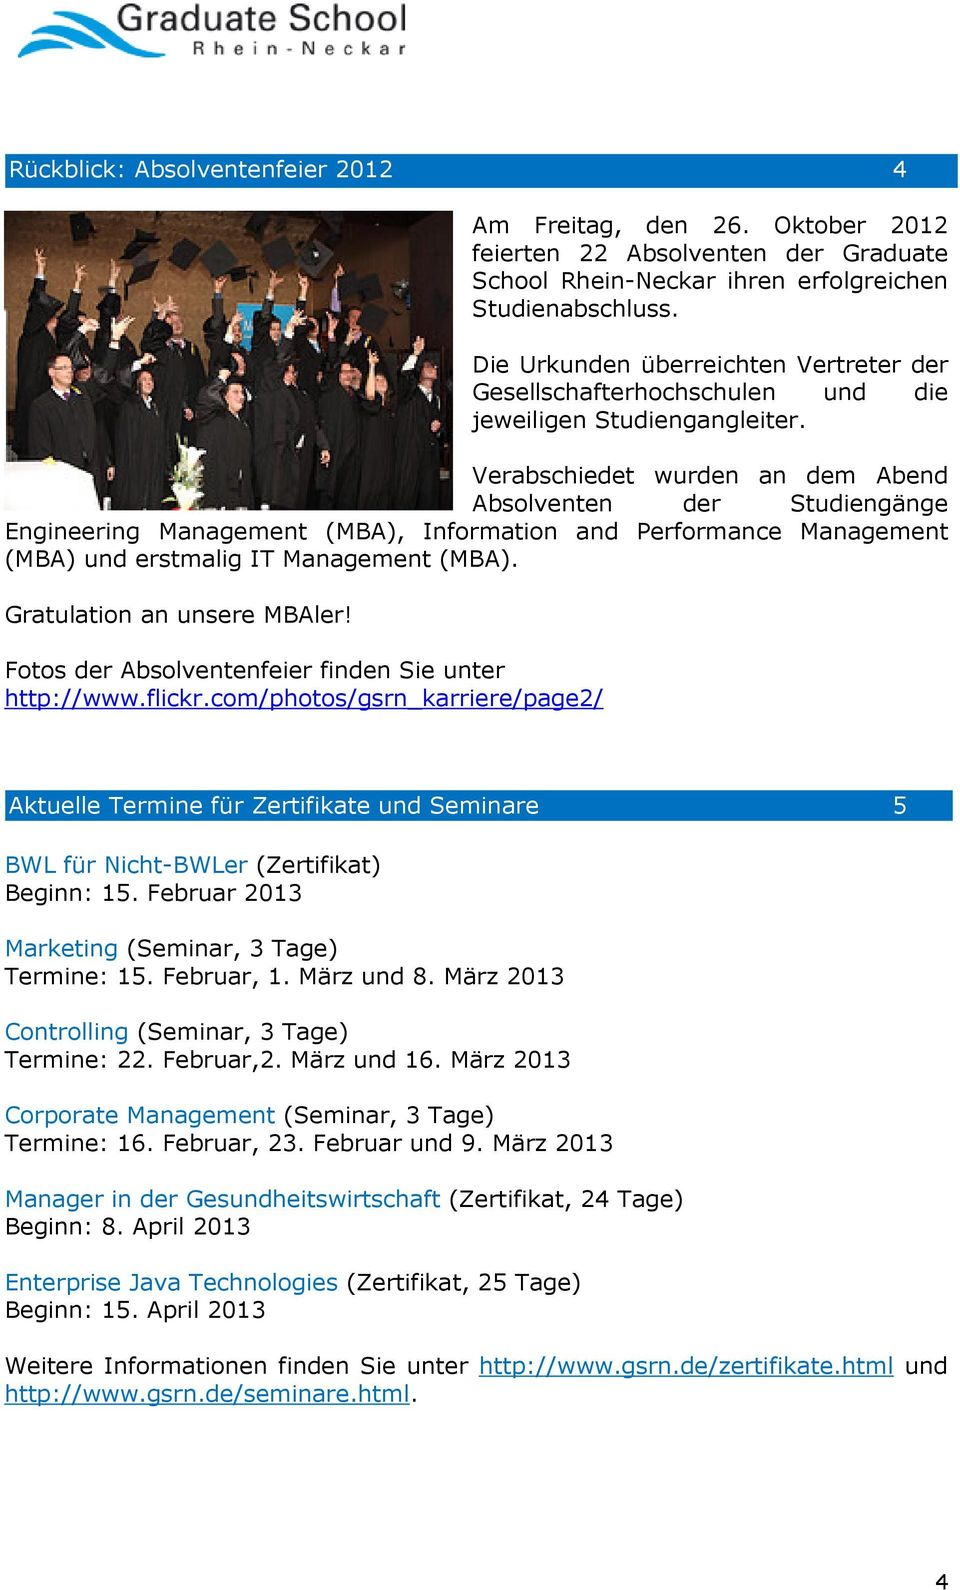 Verabschiedet wurden an dem Abend Absolventen der Studiengänge Engineering Management (MBA), Information and Performance Management (MBA) und erstmalig IT Management (MBA).